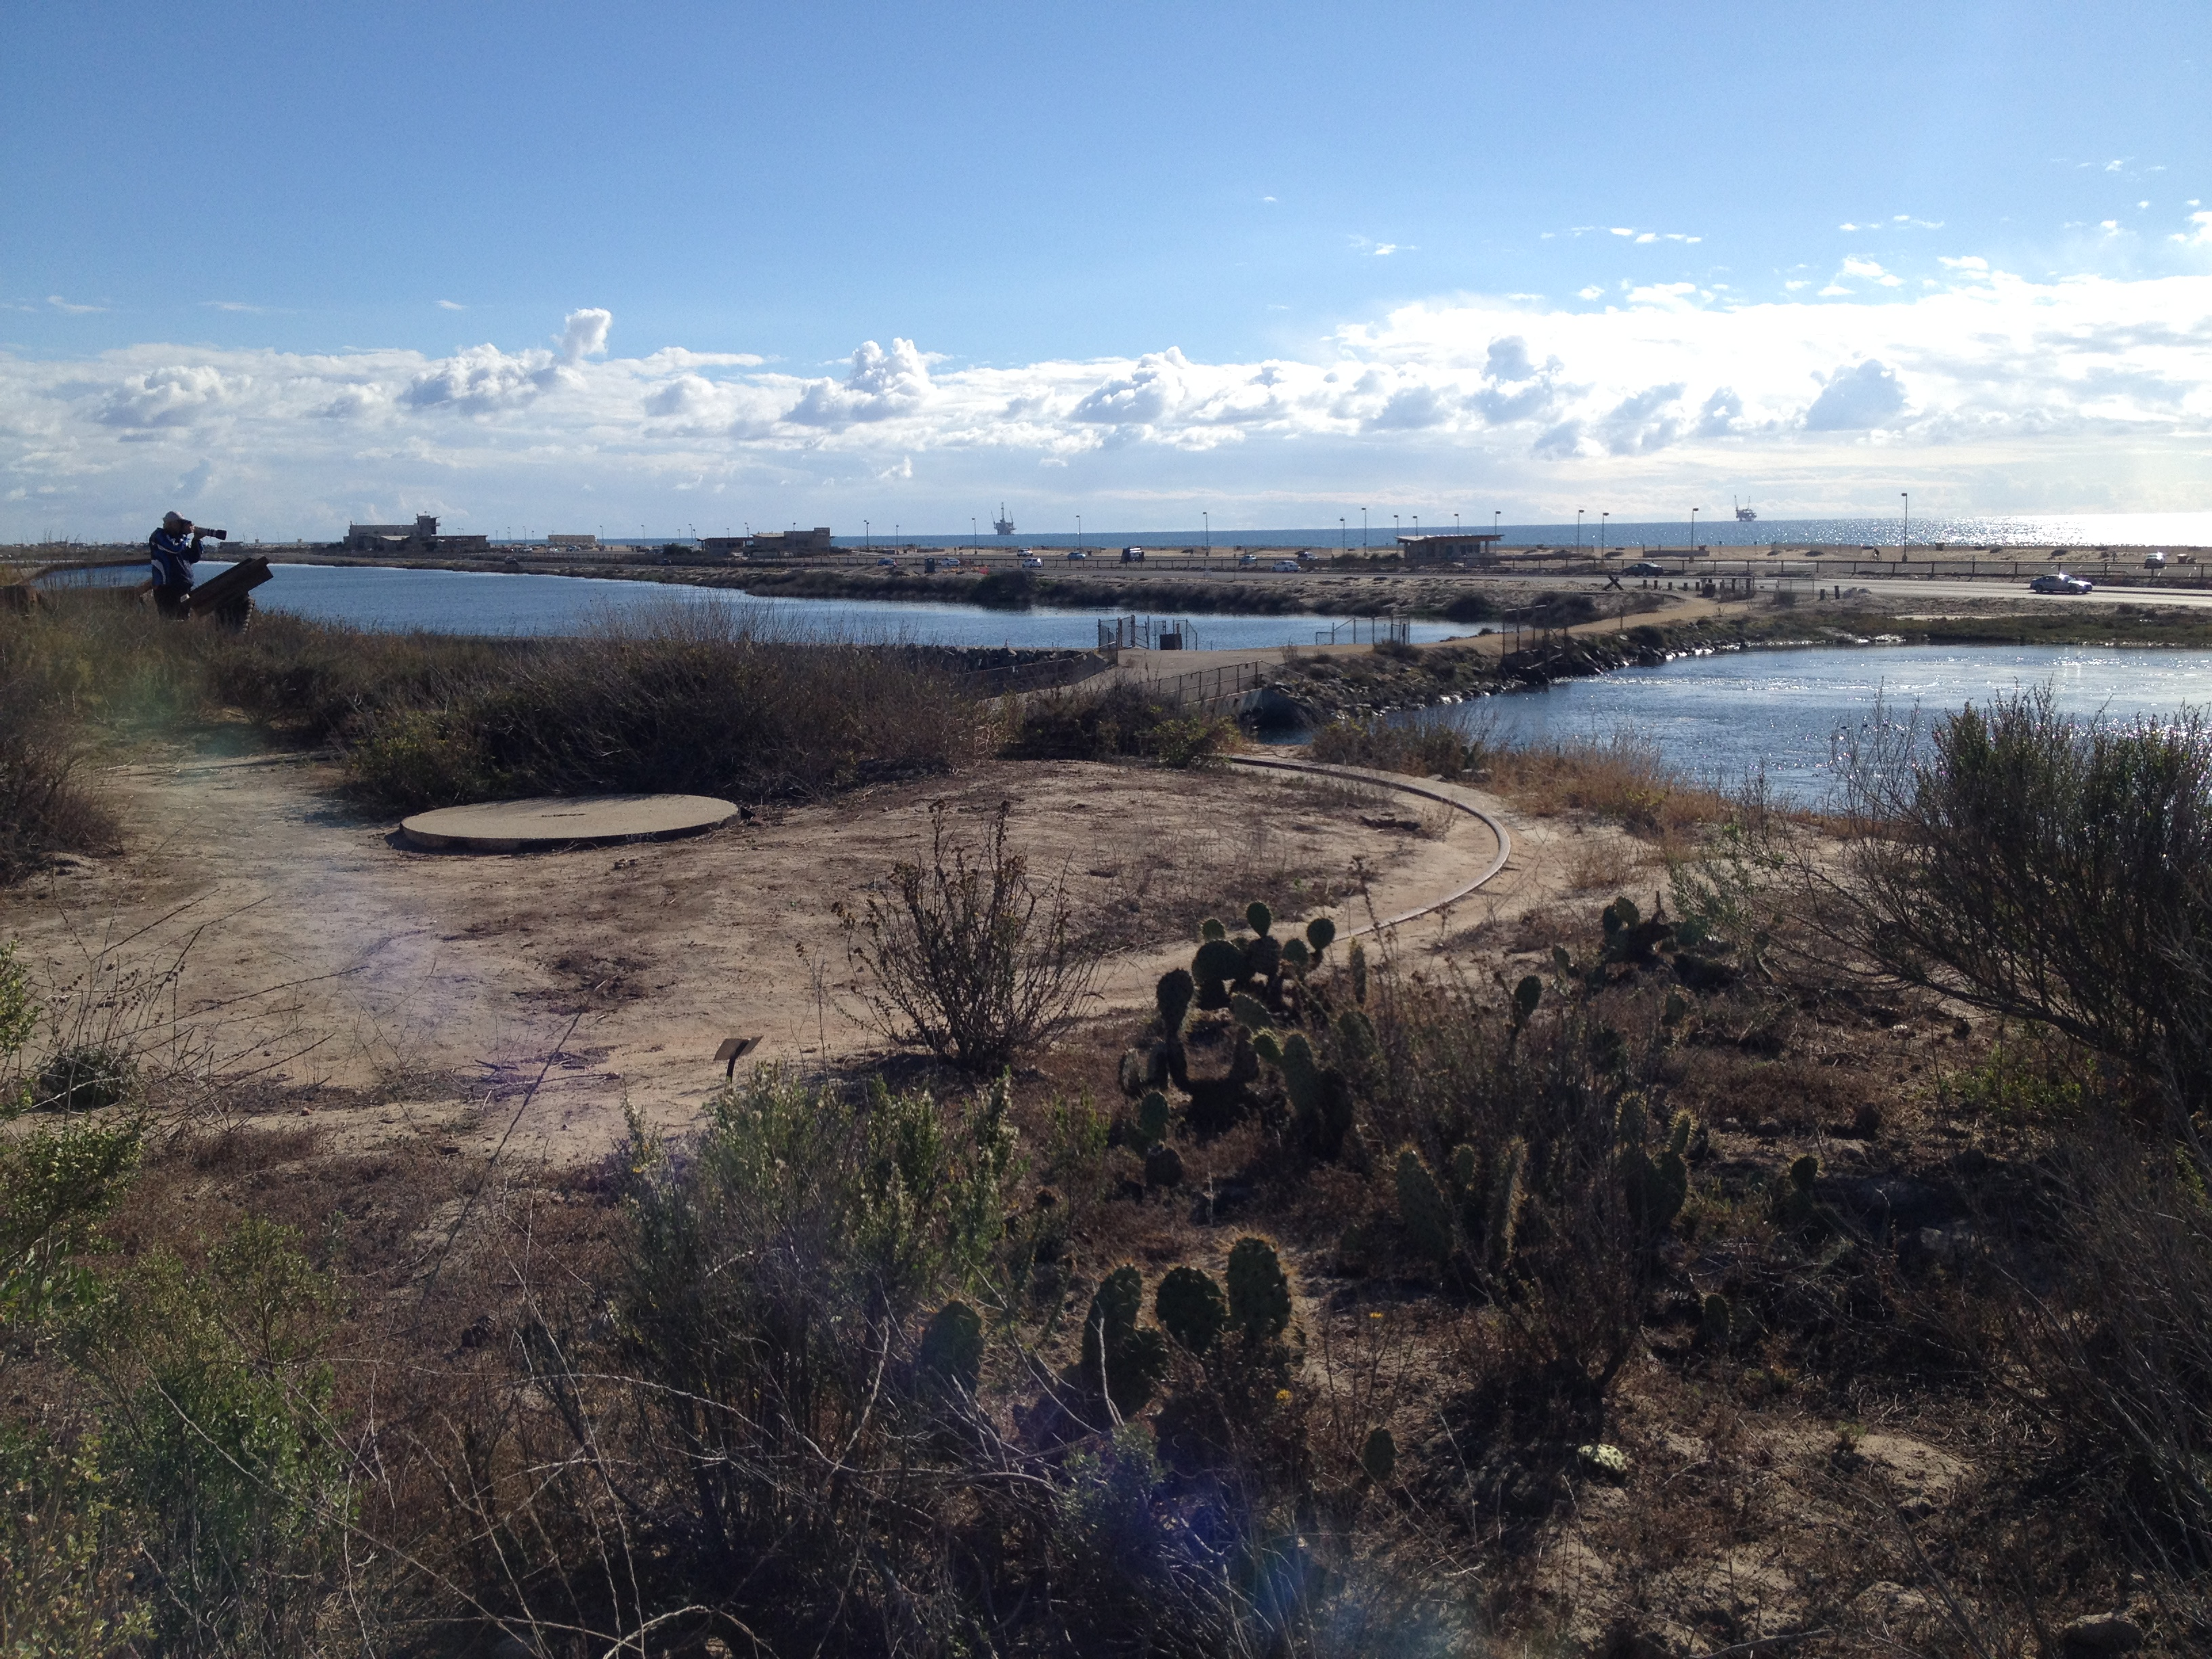 Gun mounts at Bolsa Chica